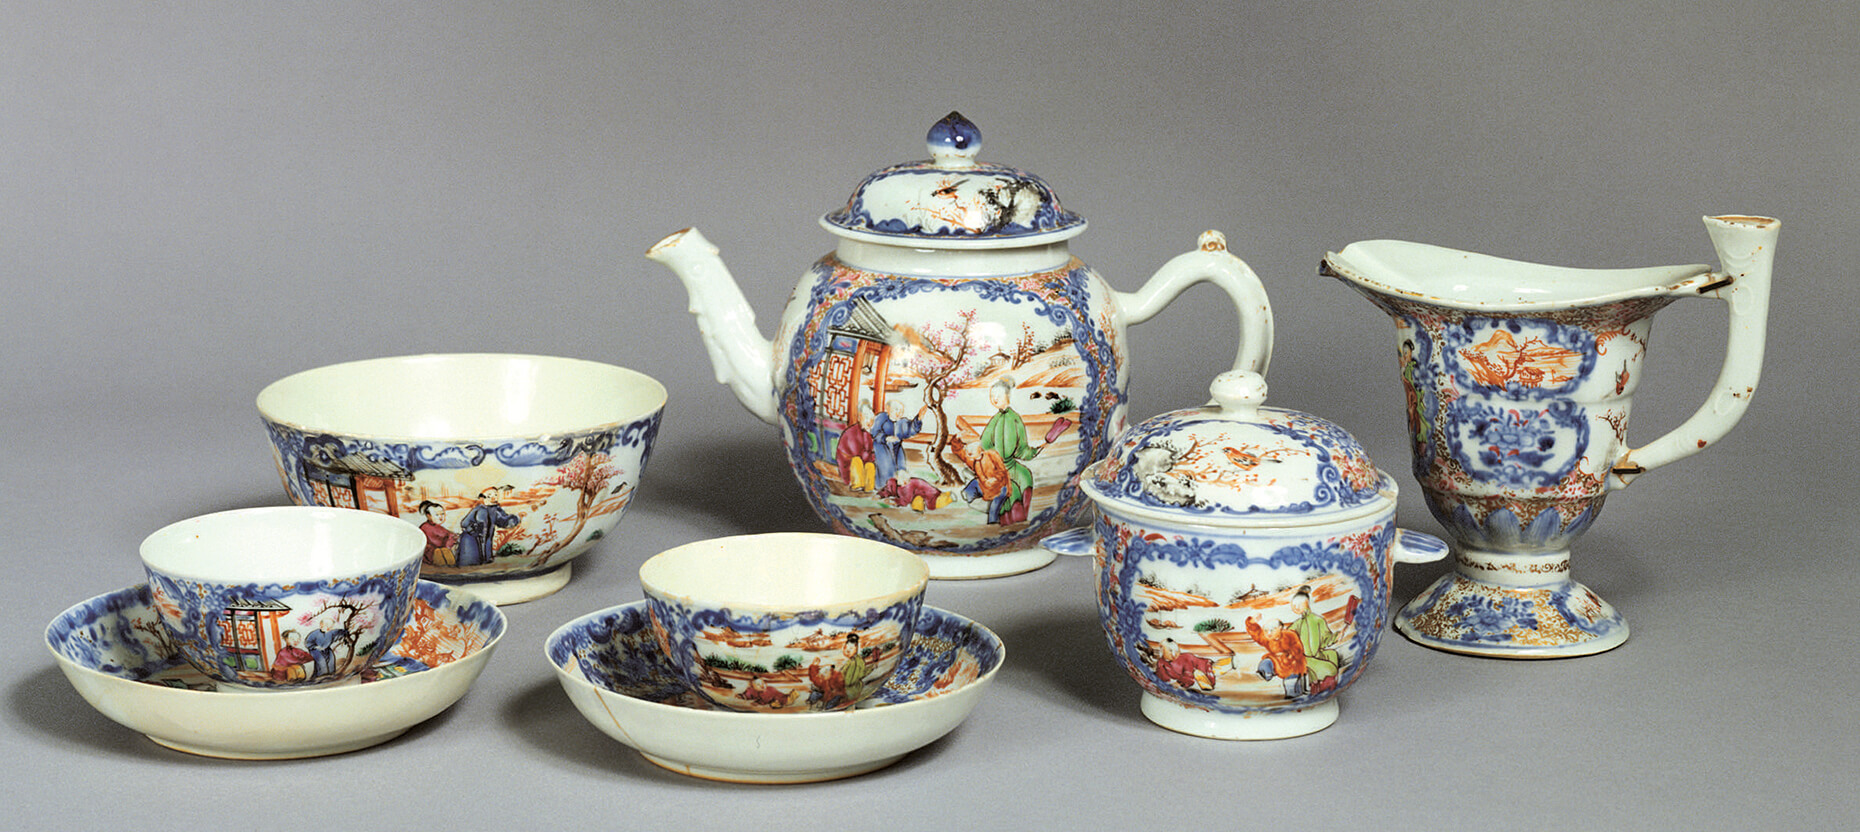 Washington Chinese tea set in Mt Vernon